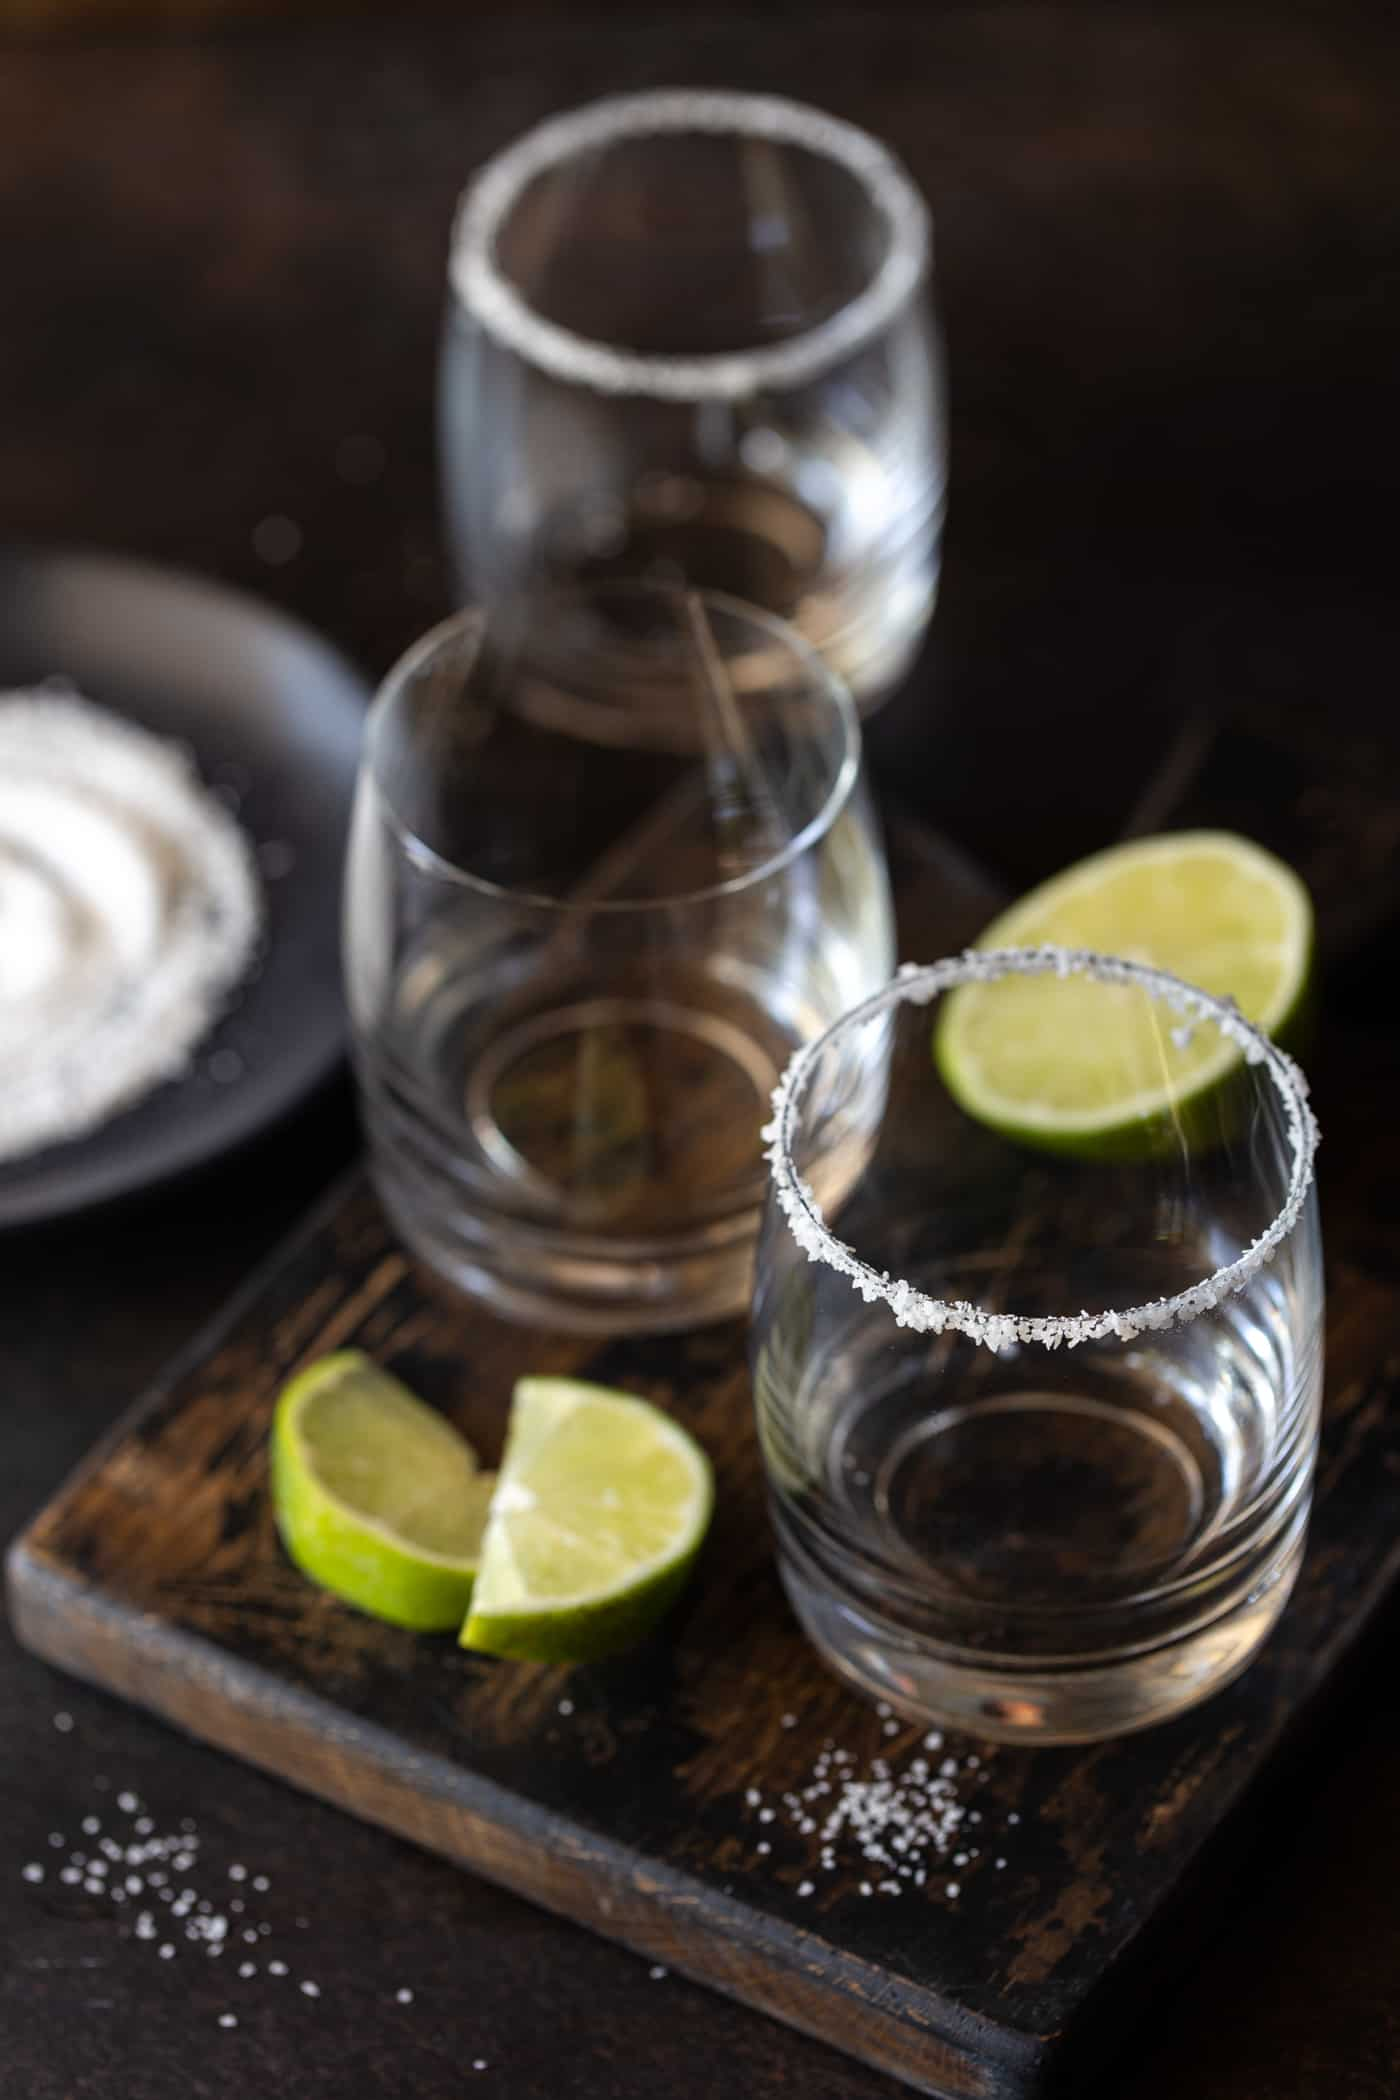 Empty lowball glasses rimmed with salt for margaritas